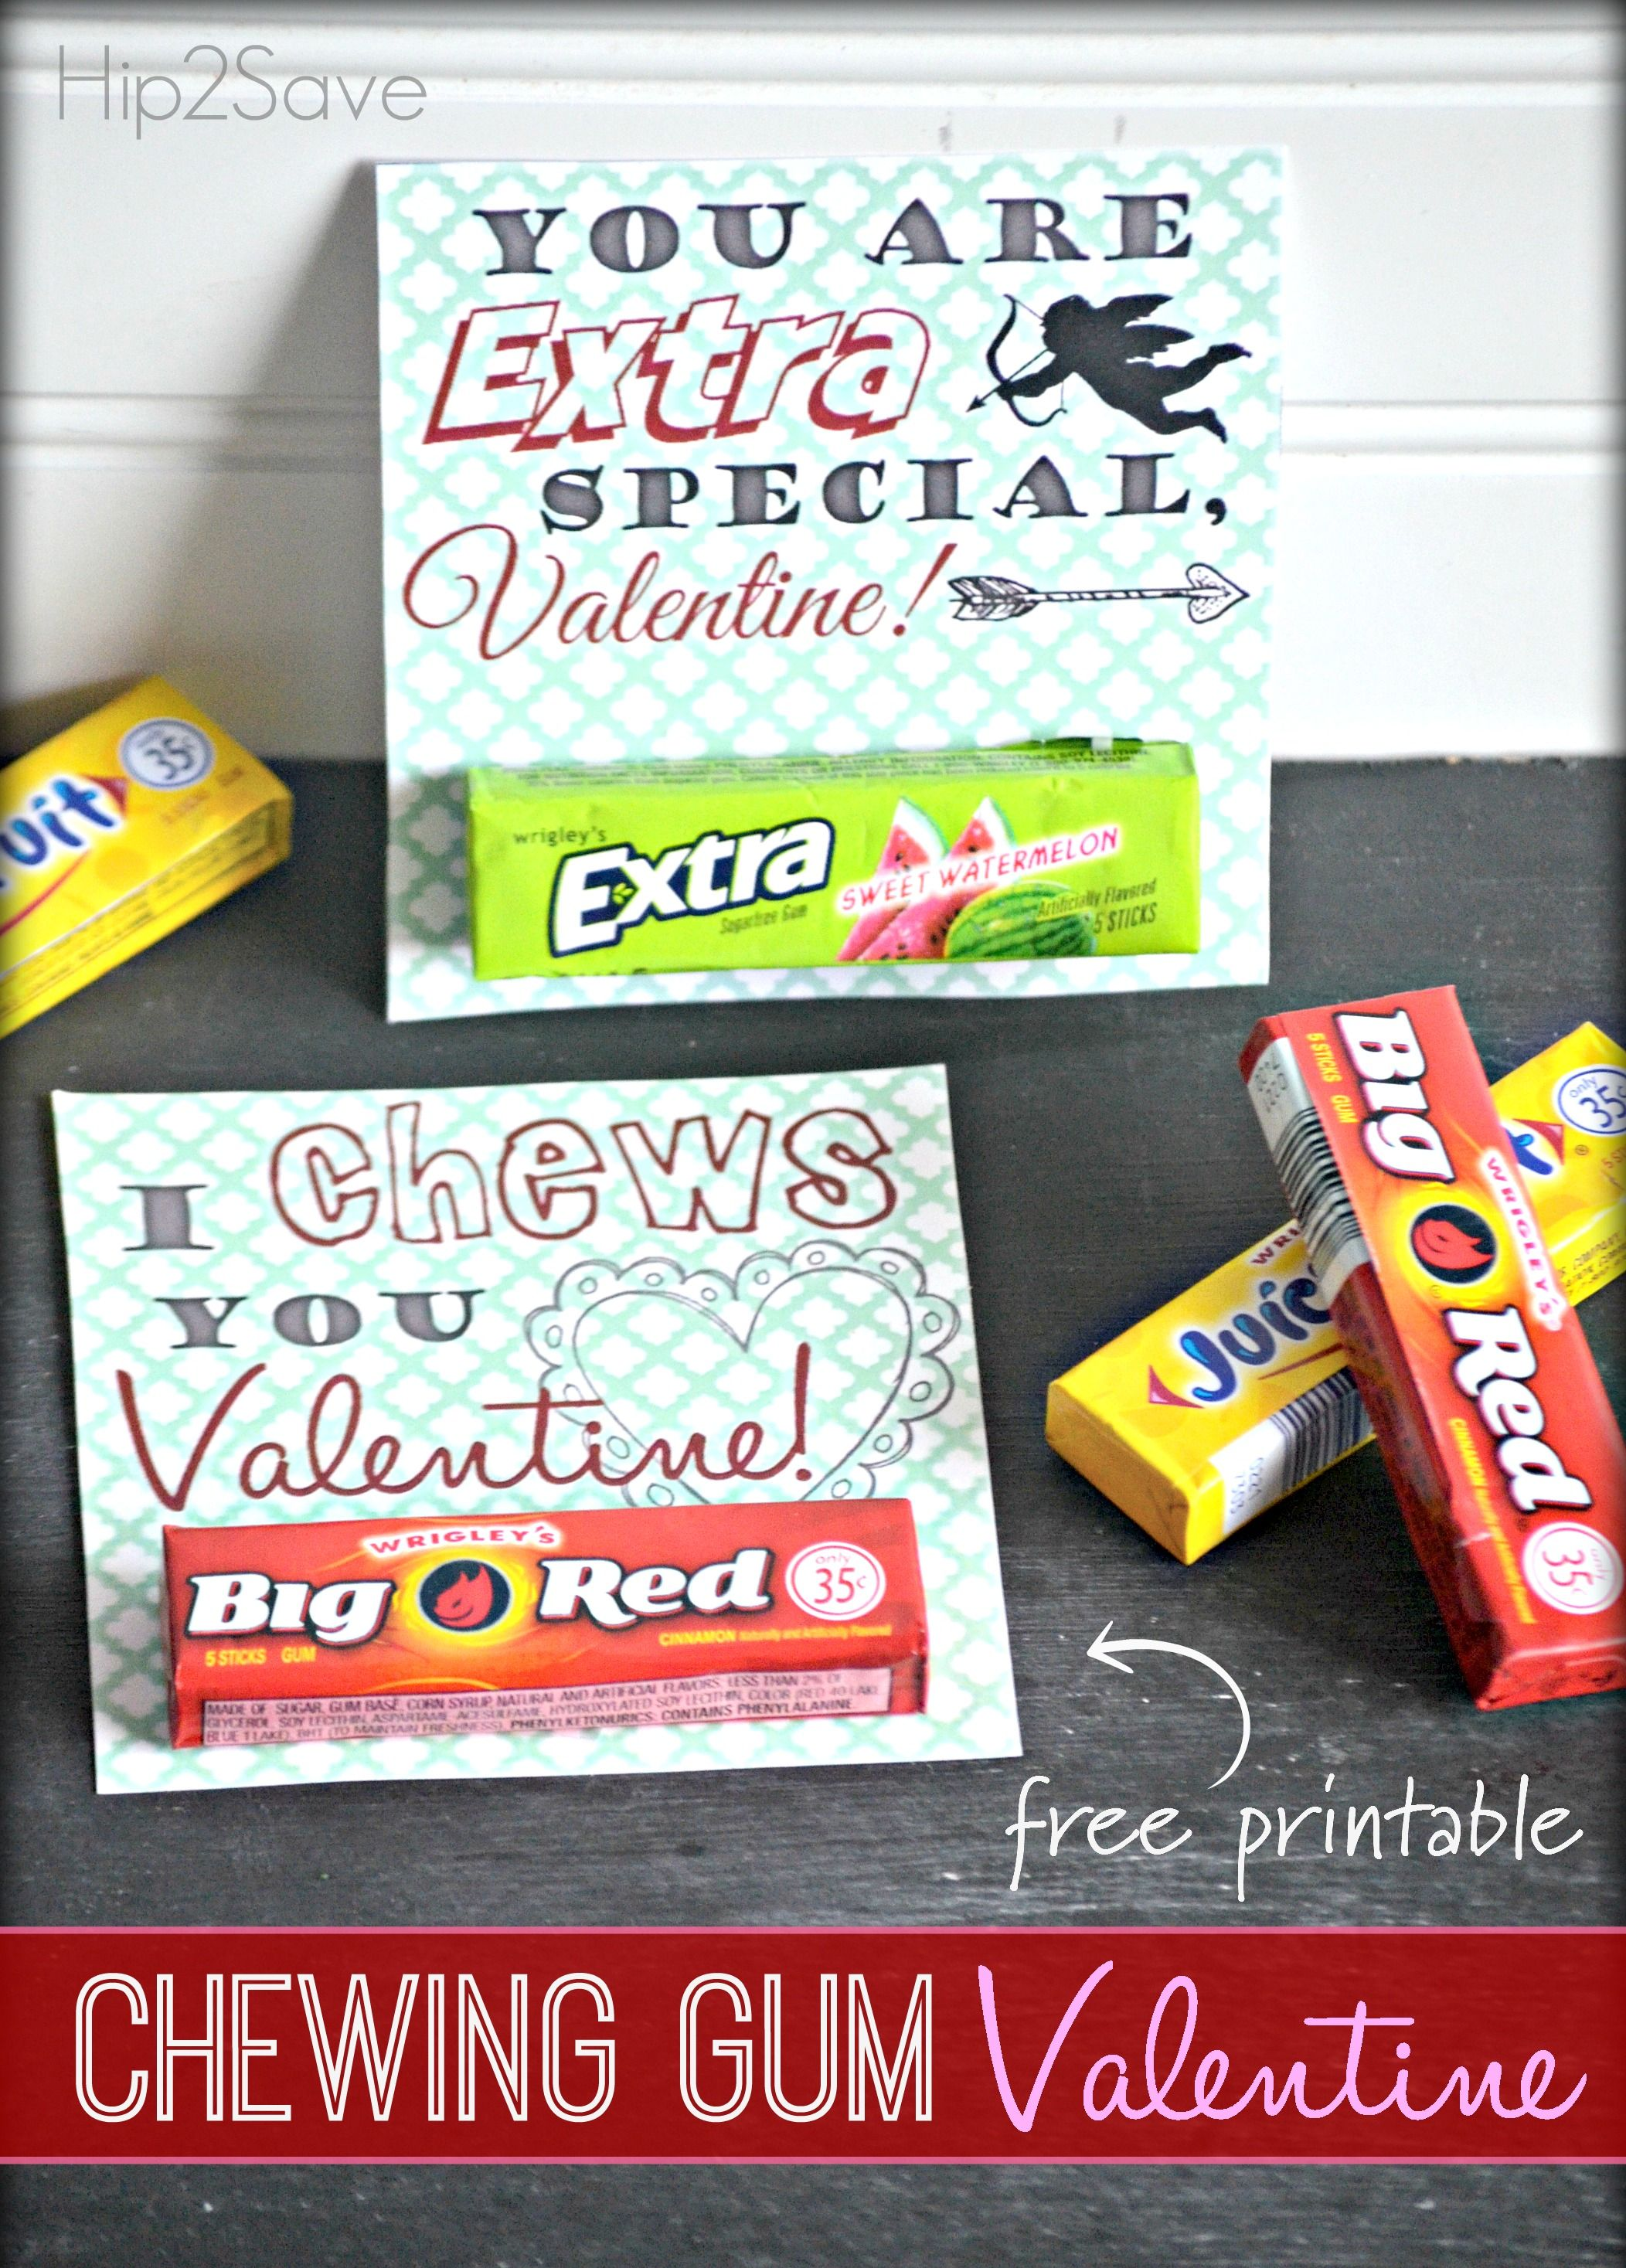 graphic relating to Extra Gum Valentine Printable referred to as Chewing Gum Valentines Working day Playing cards (No cost Printables) All